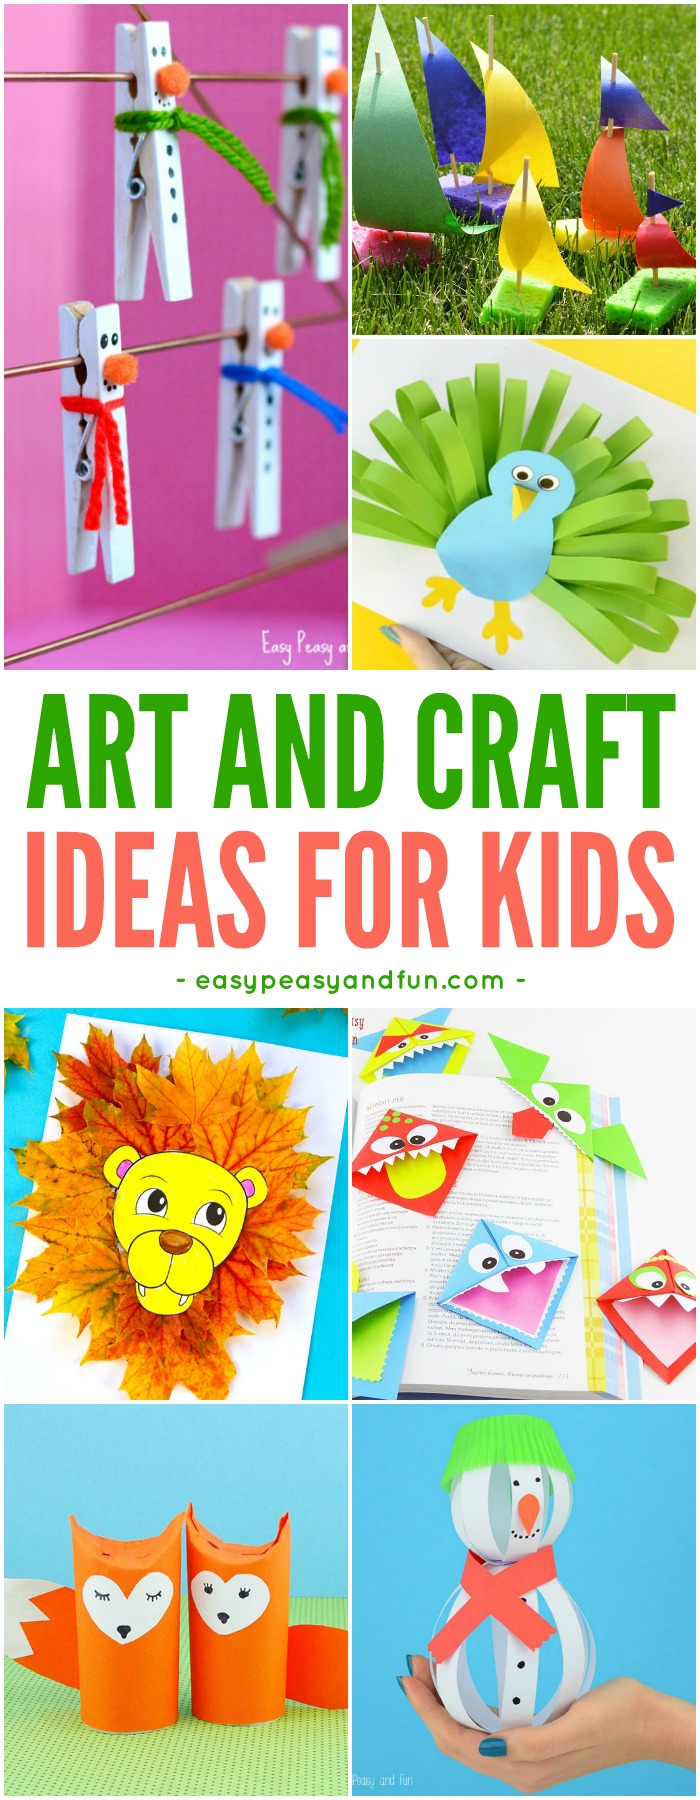 10 Great Easy Arts And Craft Ideas crafts for kids tons of art and craft ideas for kids to make 2 2021